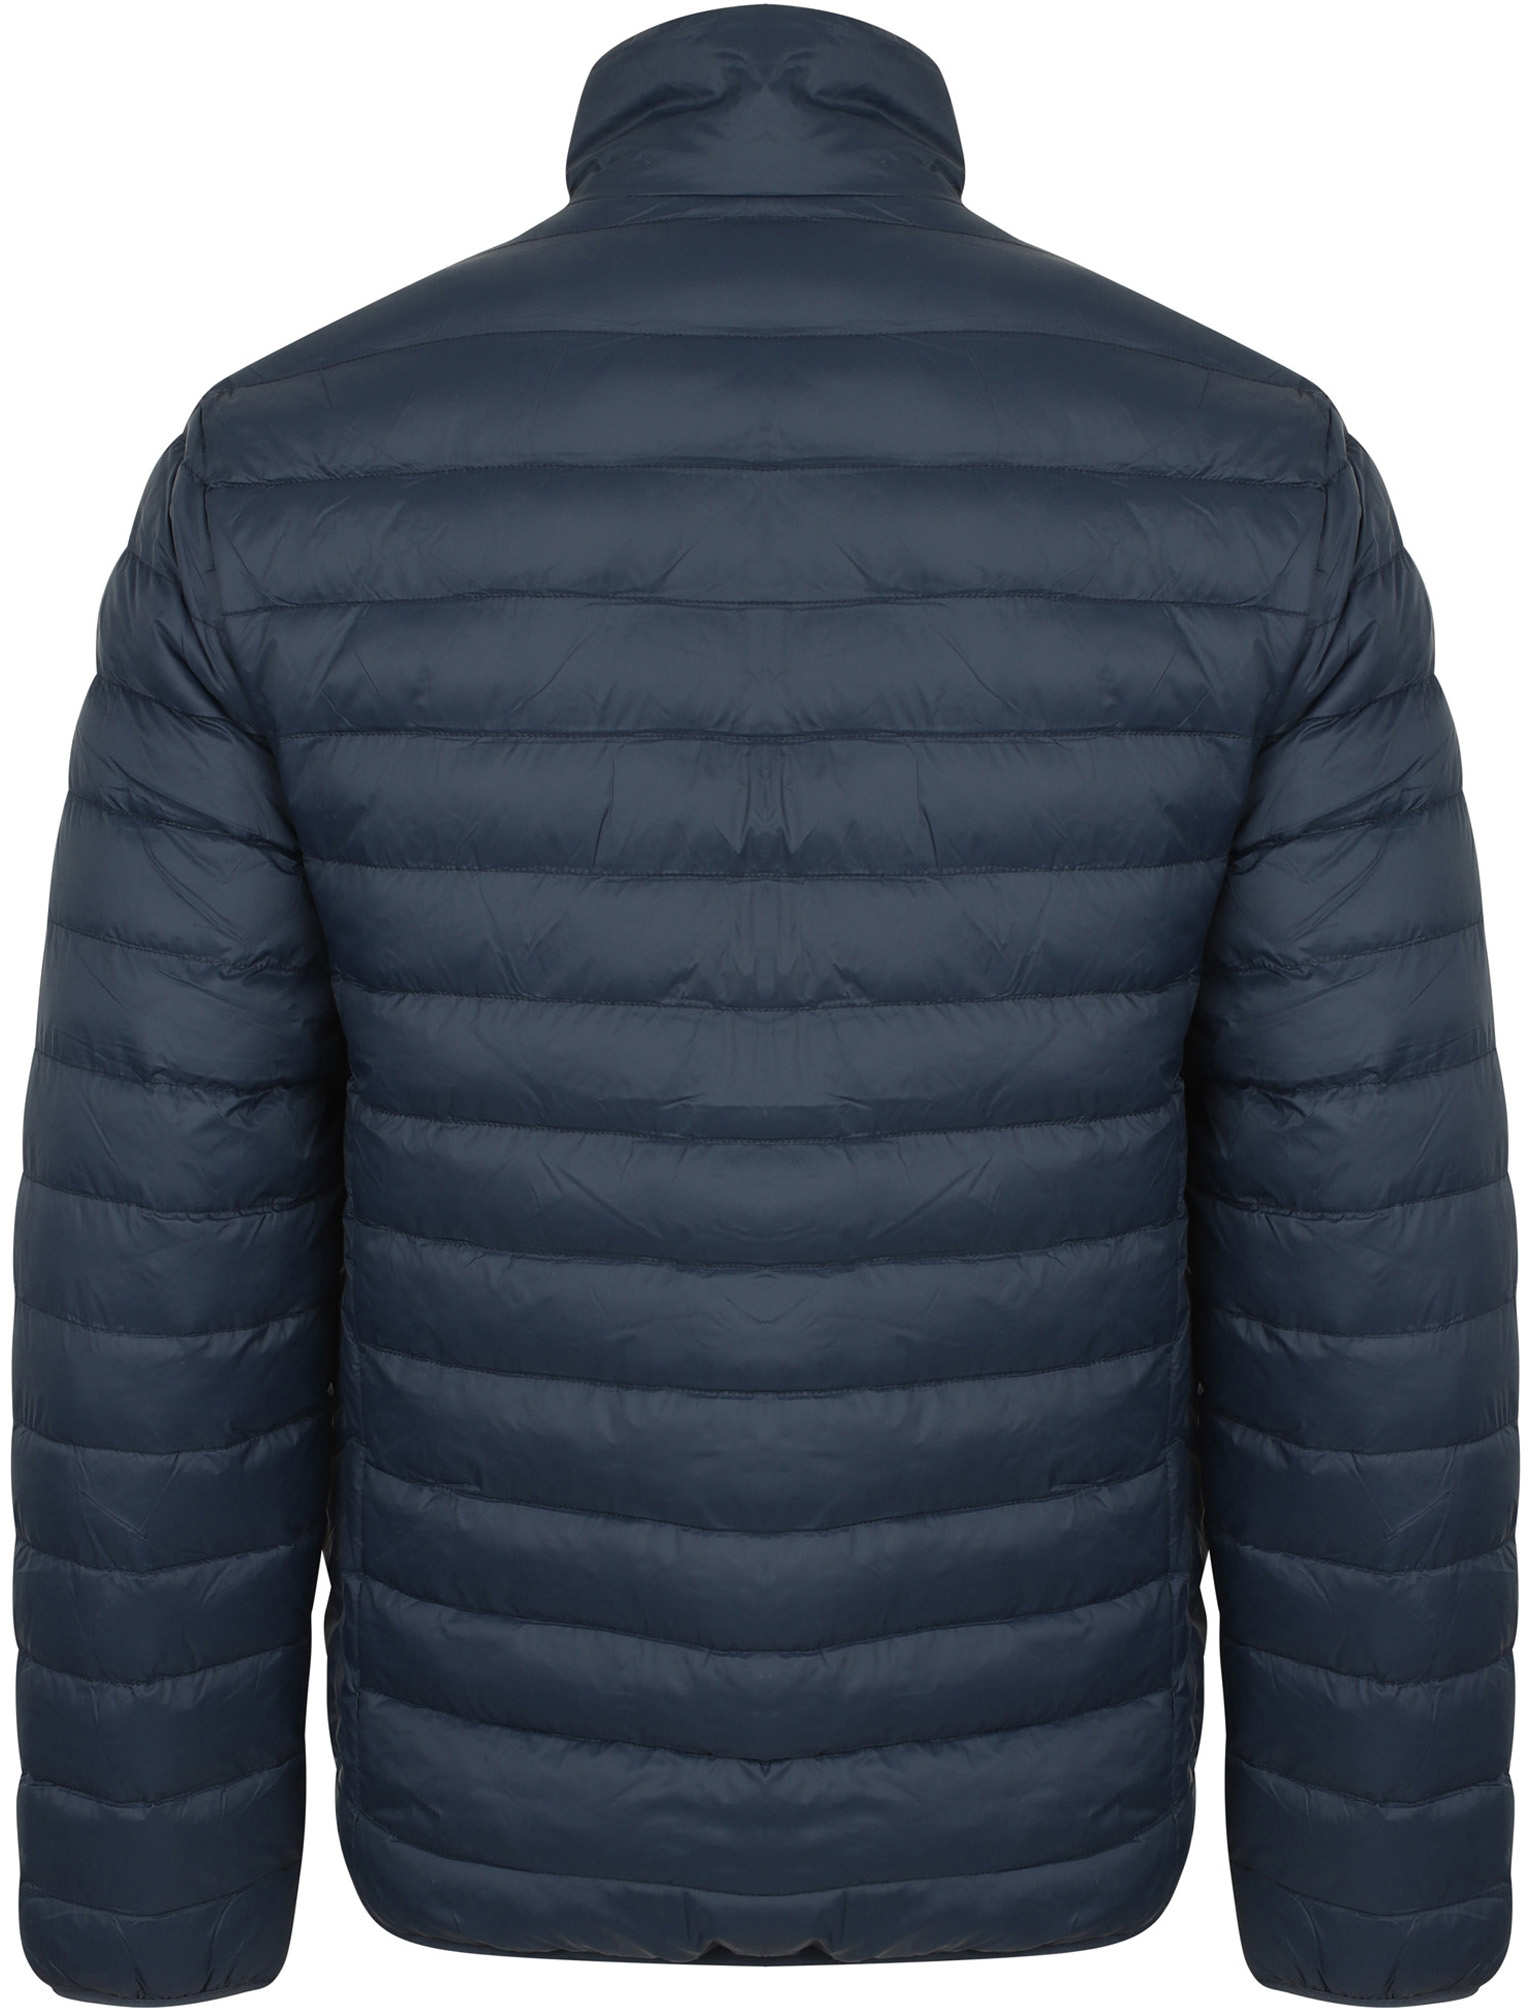 Tokyo-Laundry-Men-039-s-Bakman-Plain-Quilted-Padded-Puffer-Bubble-Jacket thumbnail 13